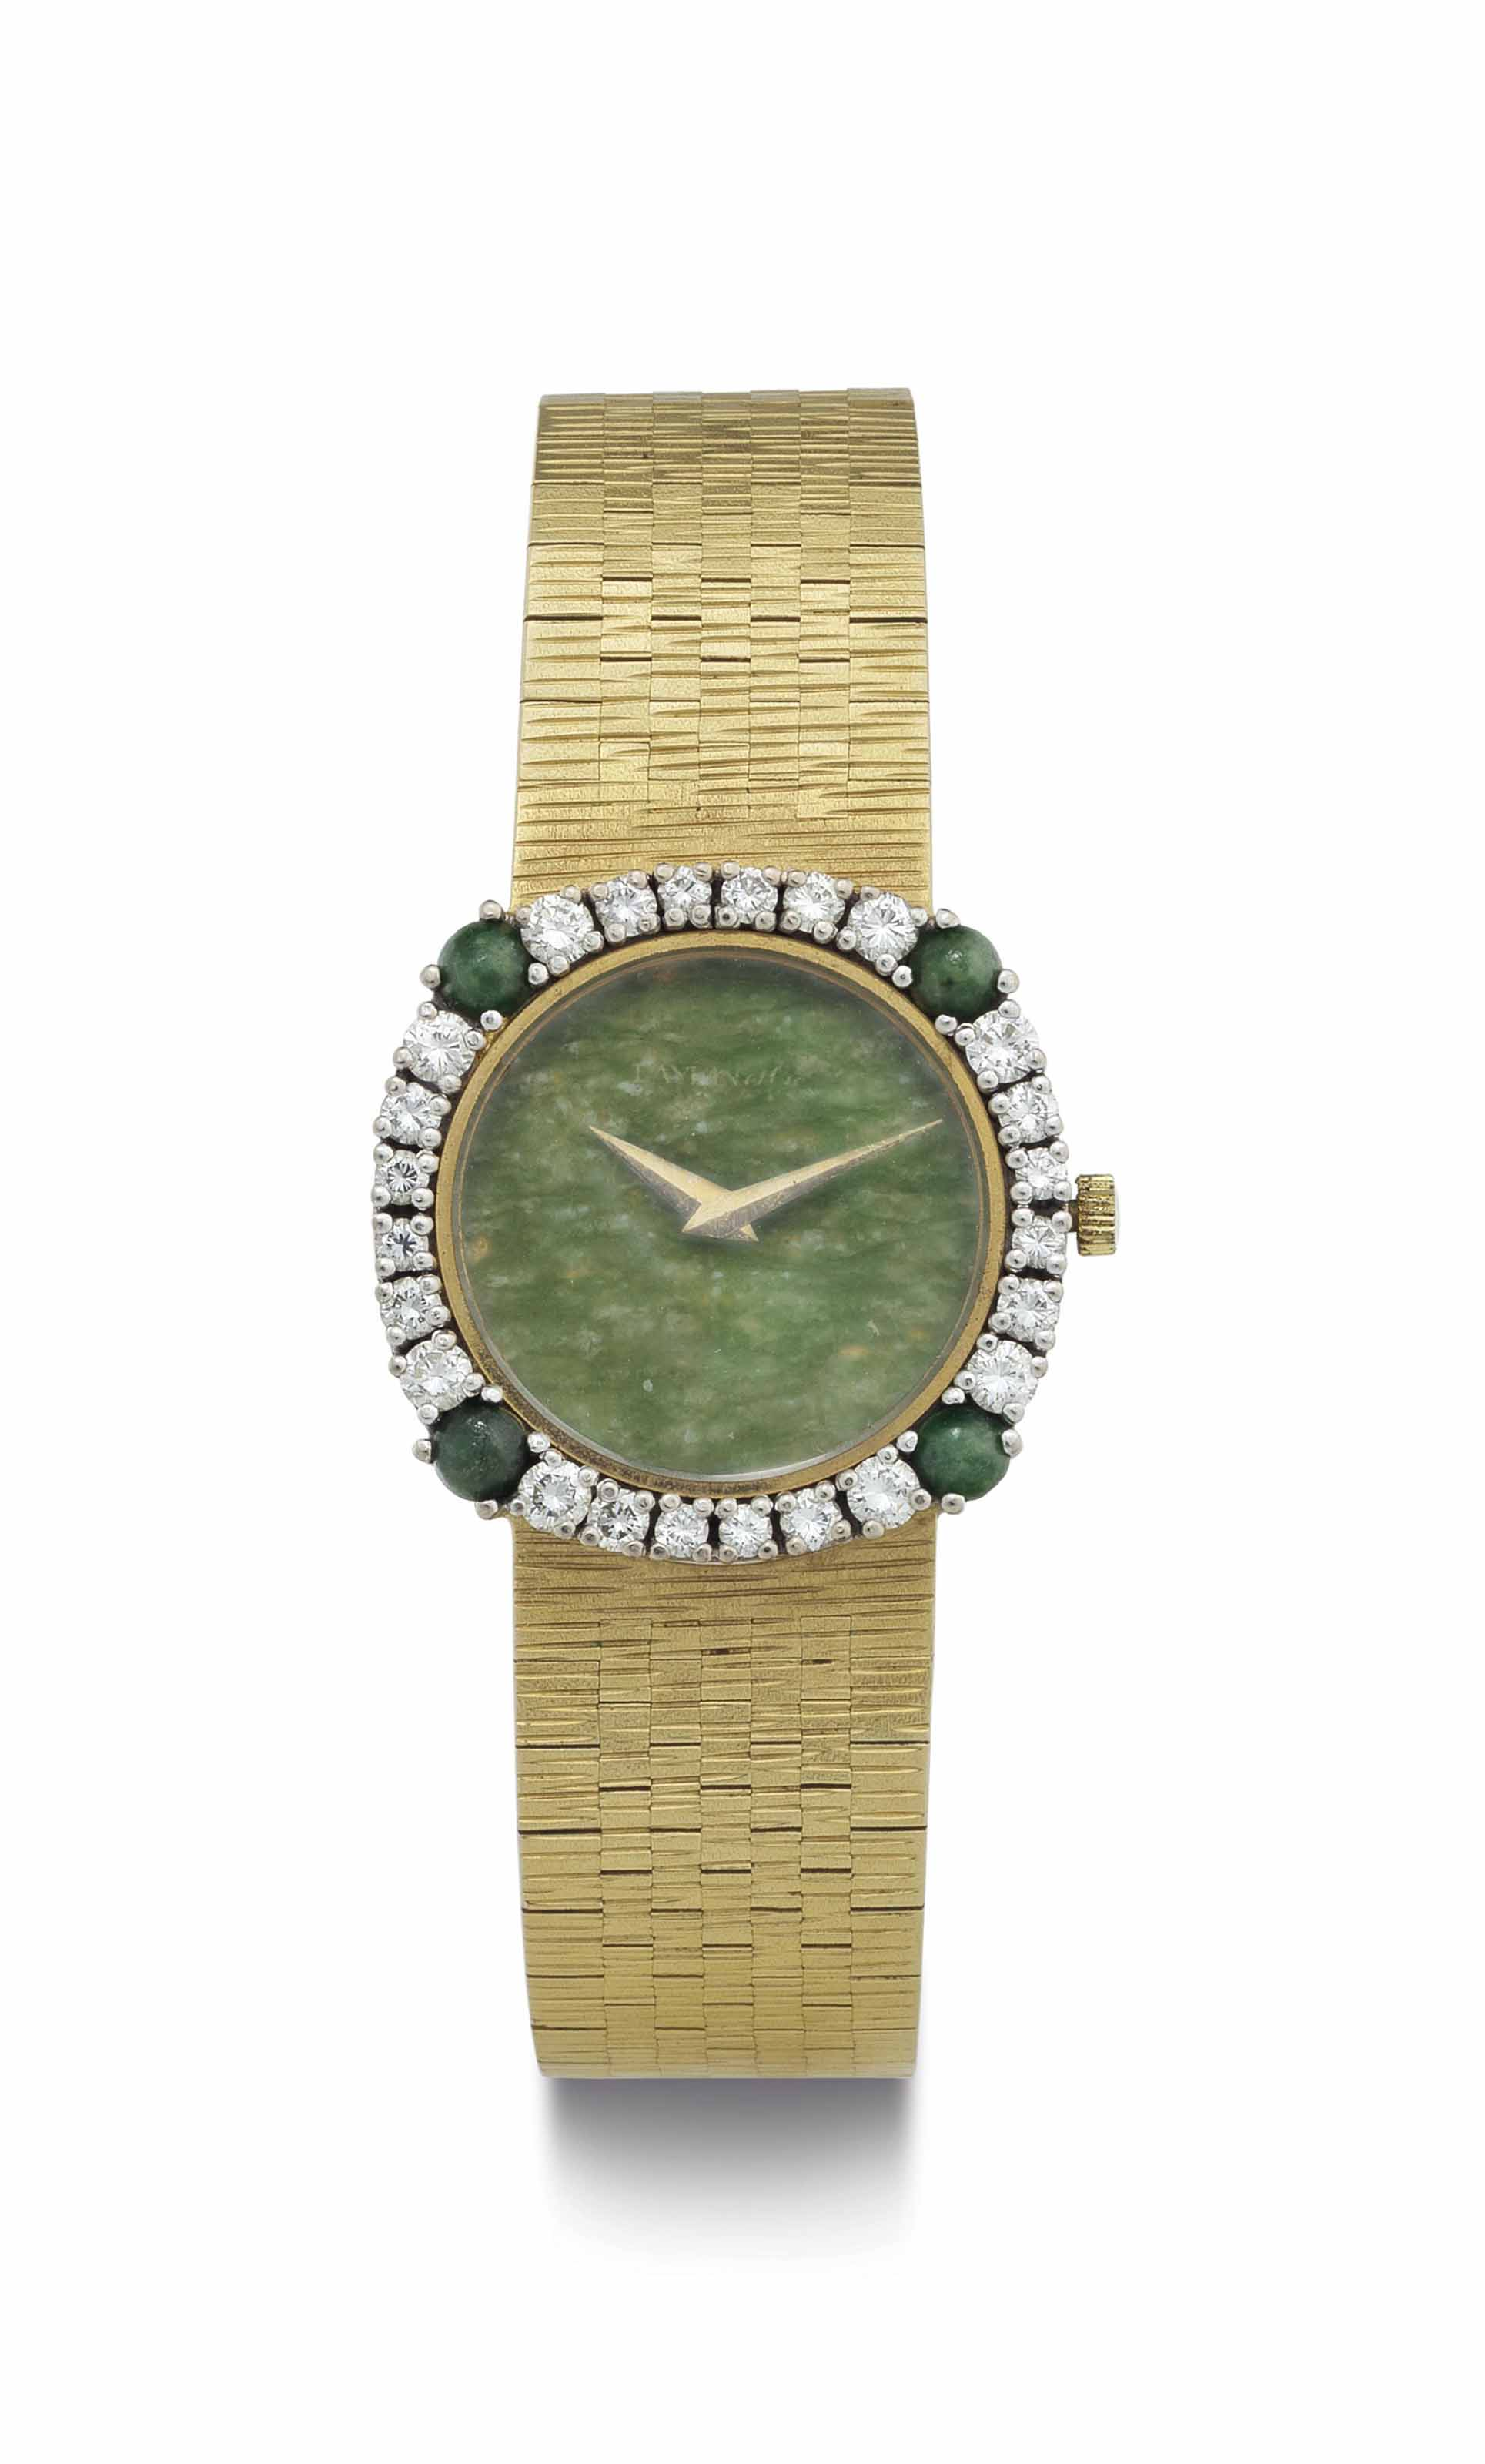 Chopard. A Lady's 18k Gold and Diamond-Set Bracelet Watch with Nephrite Dial